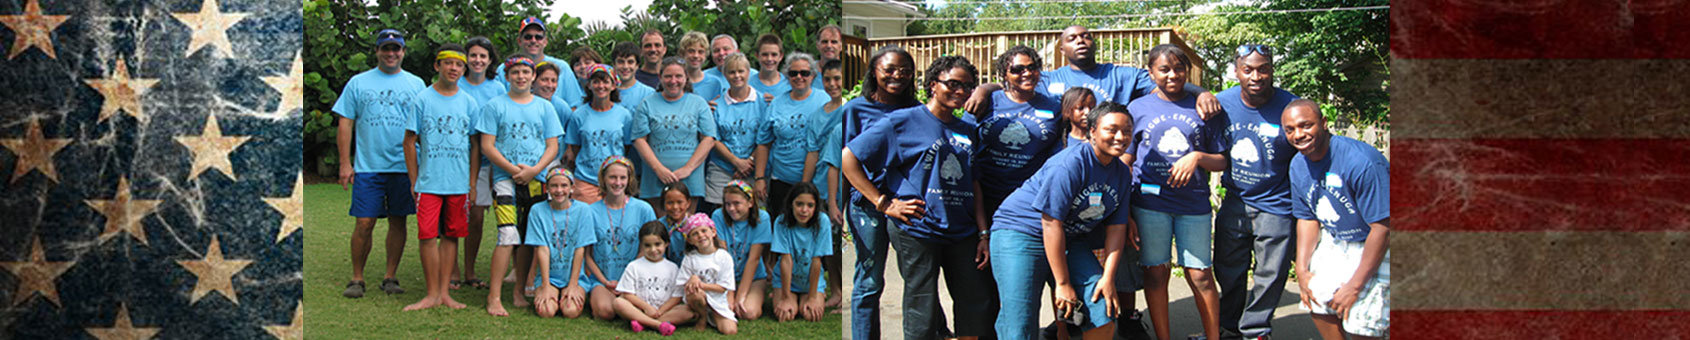 combo photo of Nwigwe family and Wittenmire family reunion t-shirts.